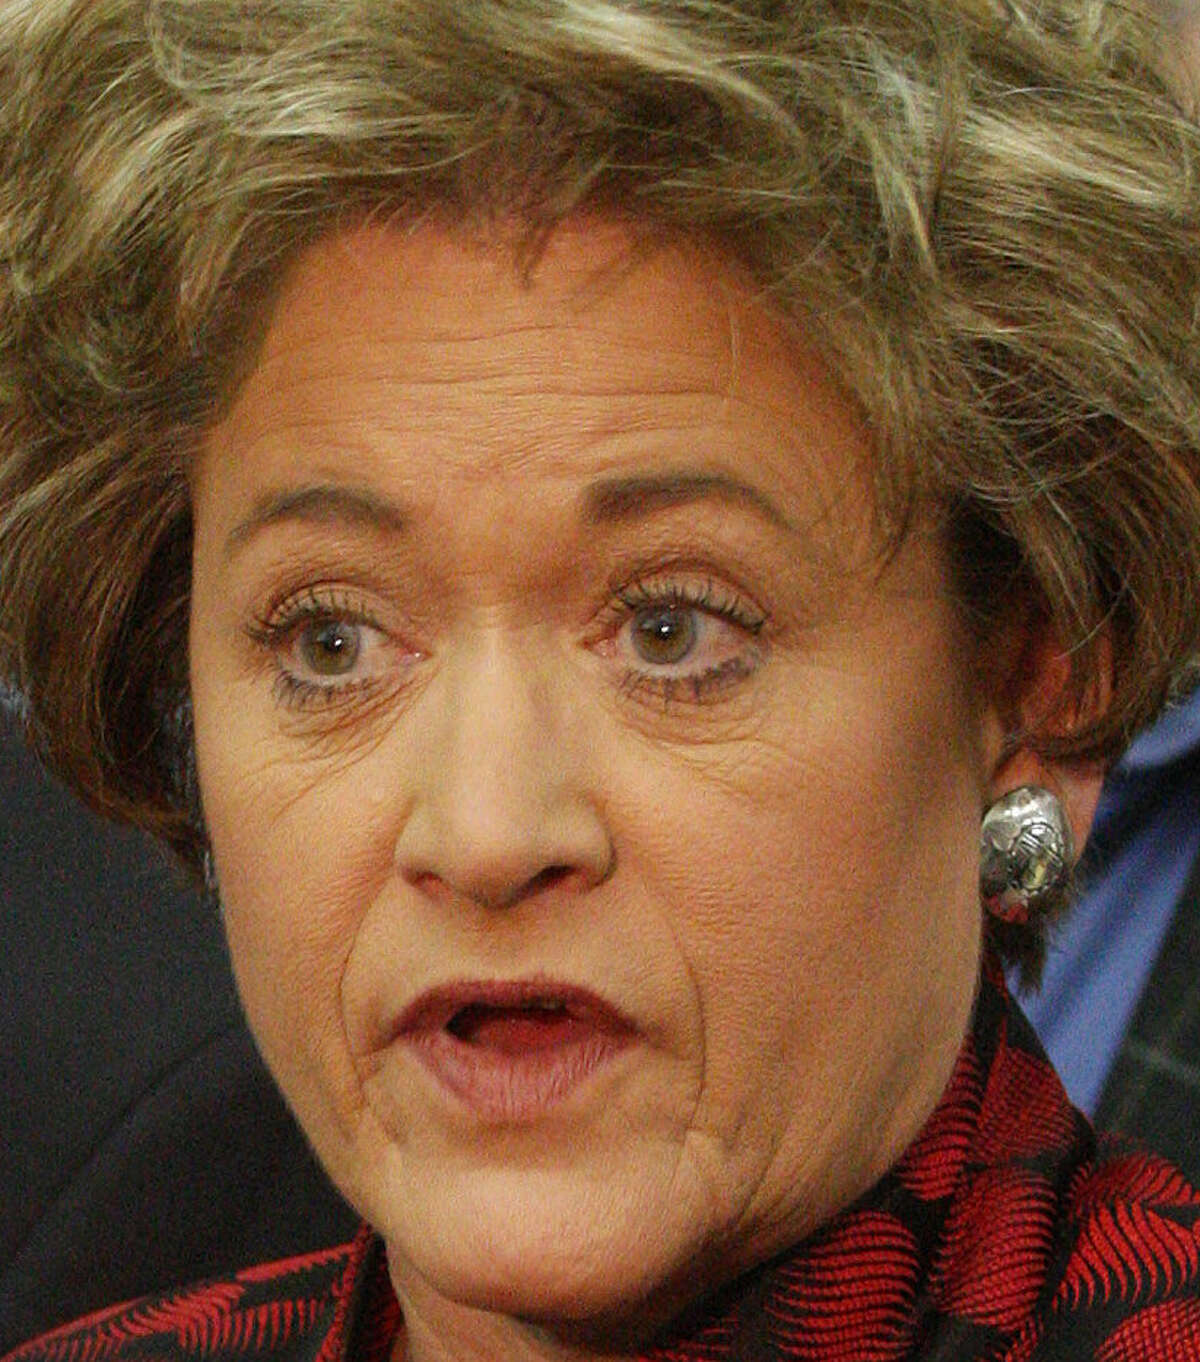 Travis County District Attorney Rosemary Lehmberg said Perry wanted her to resign after she was arrested for drunken driving last year.